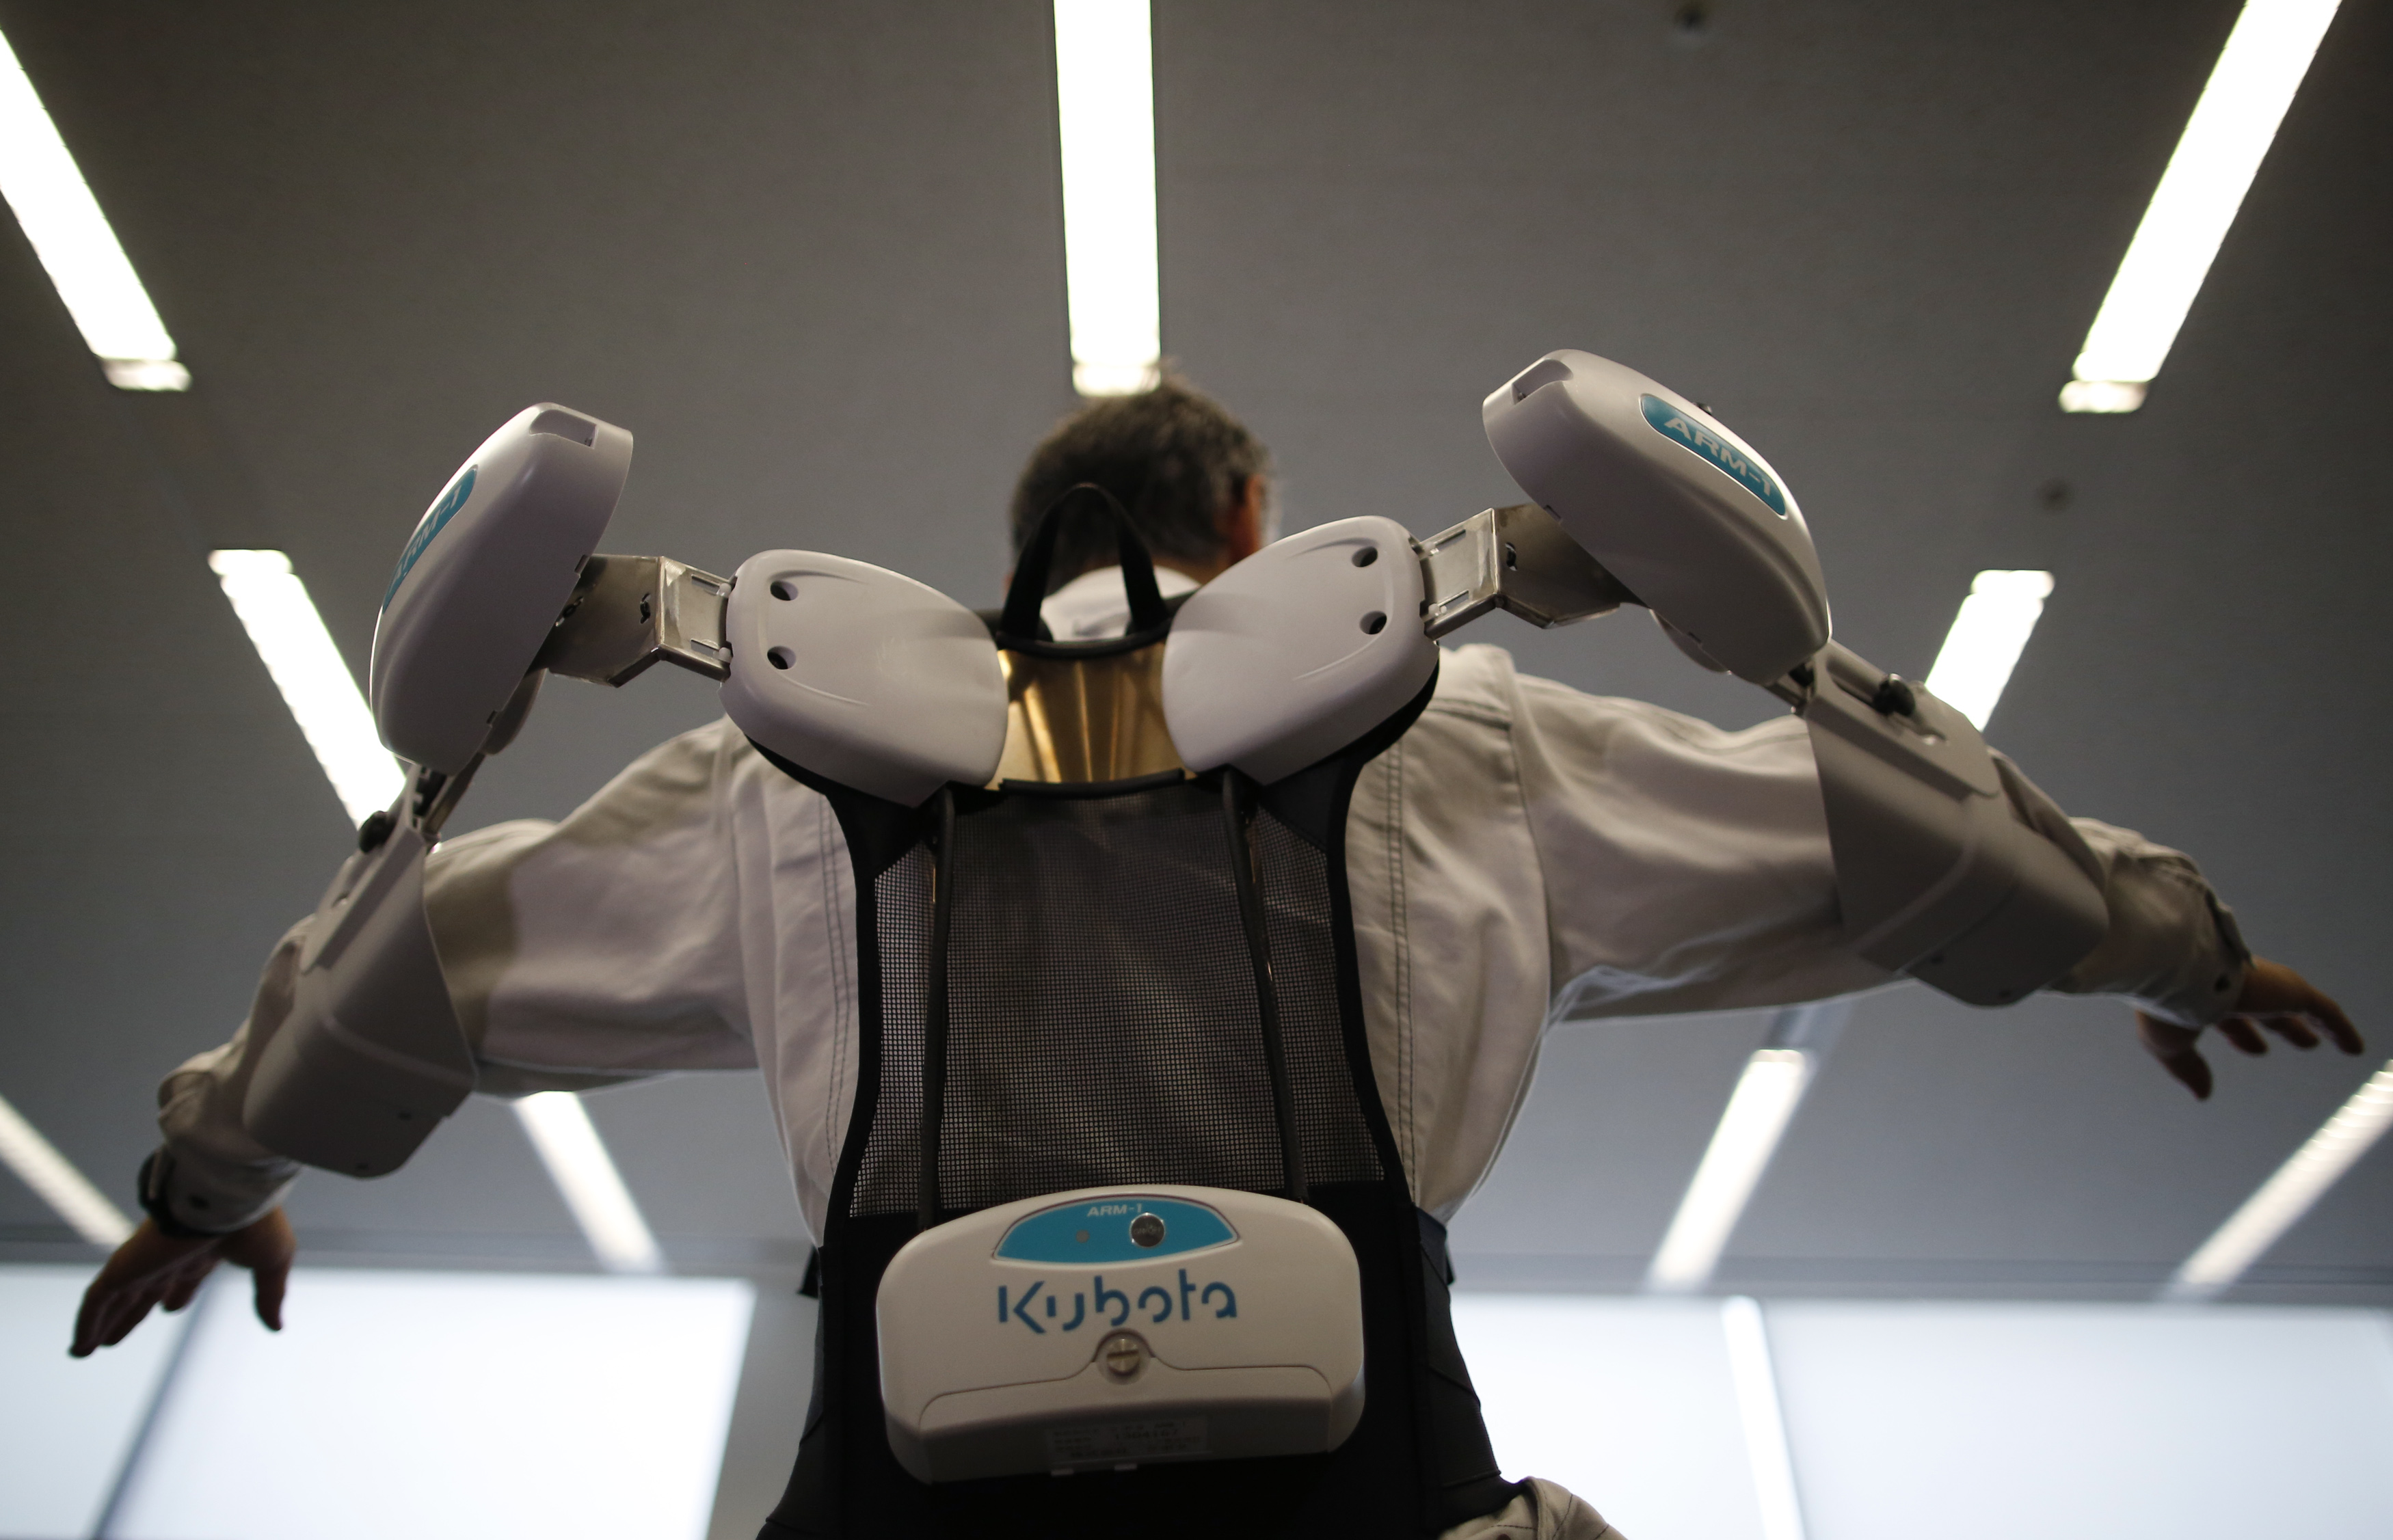 Bionic devices turn humans into superstrong workers